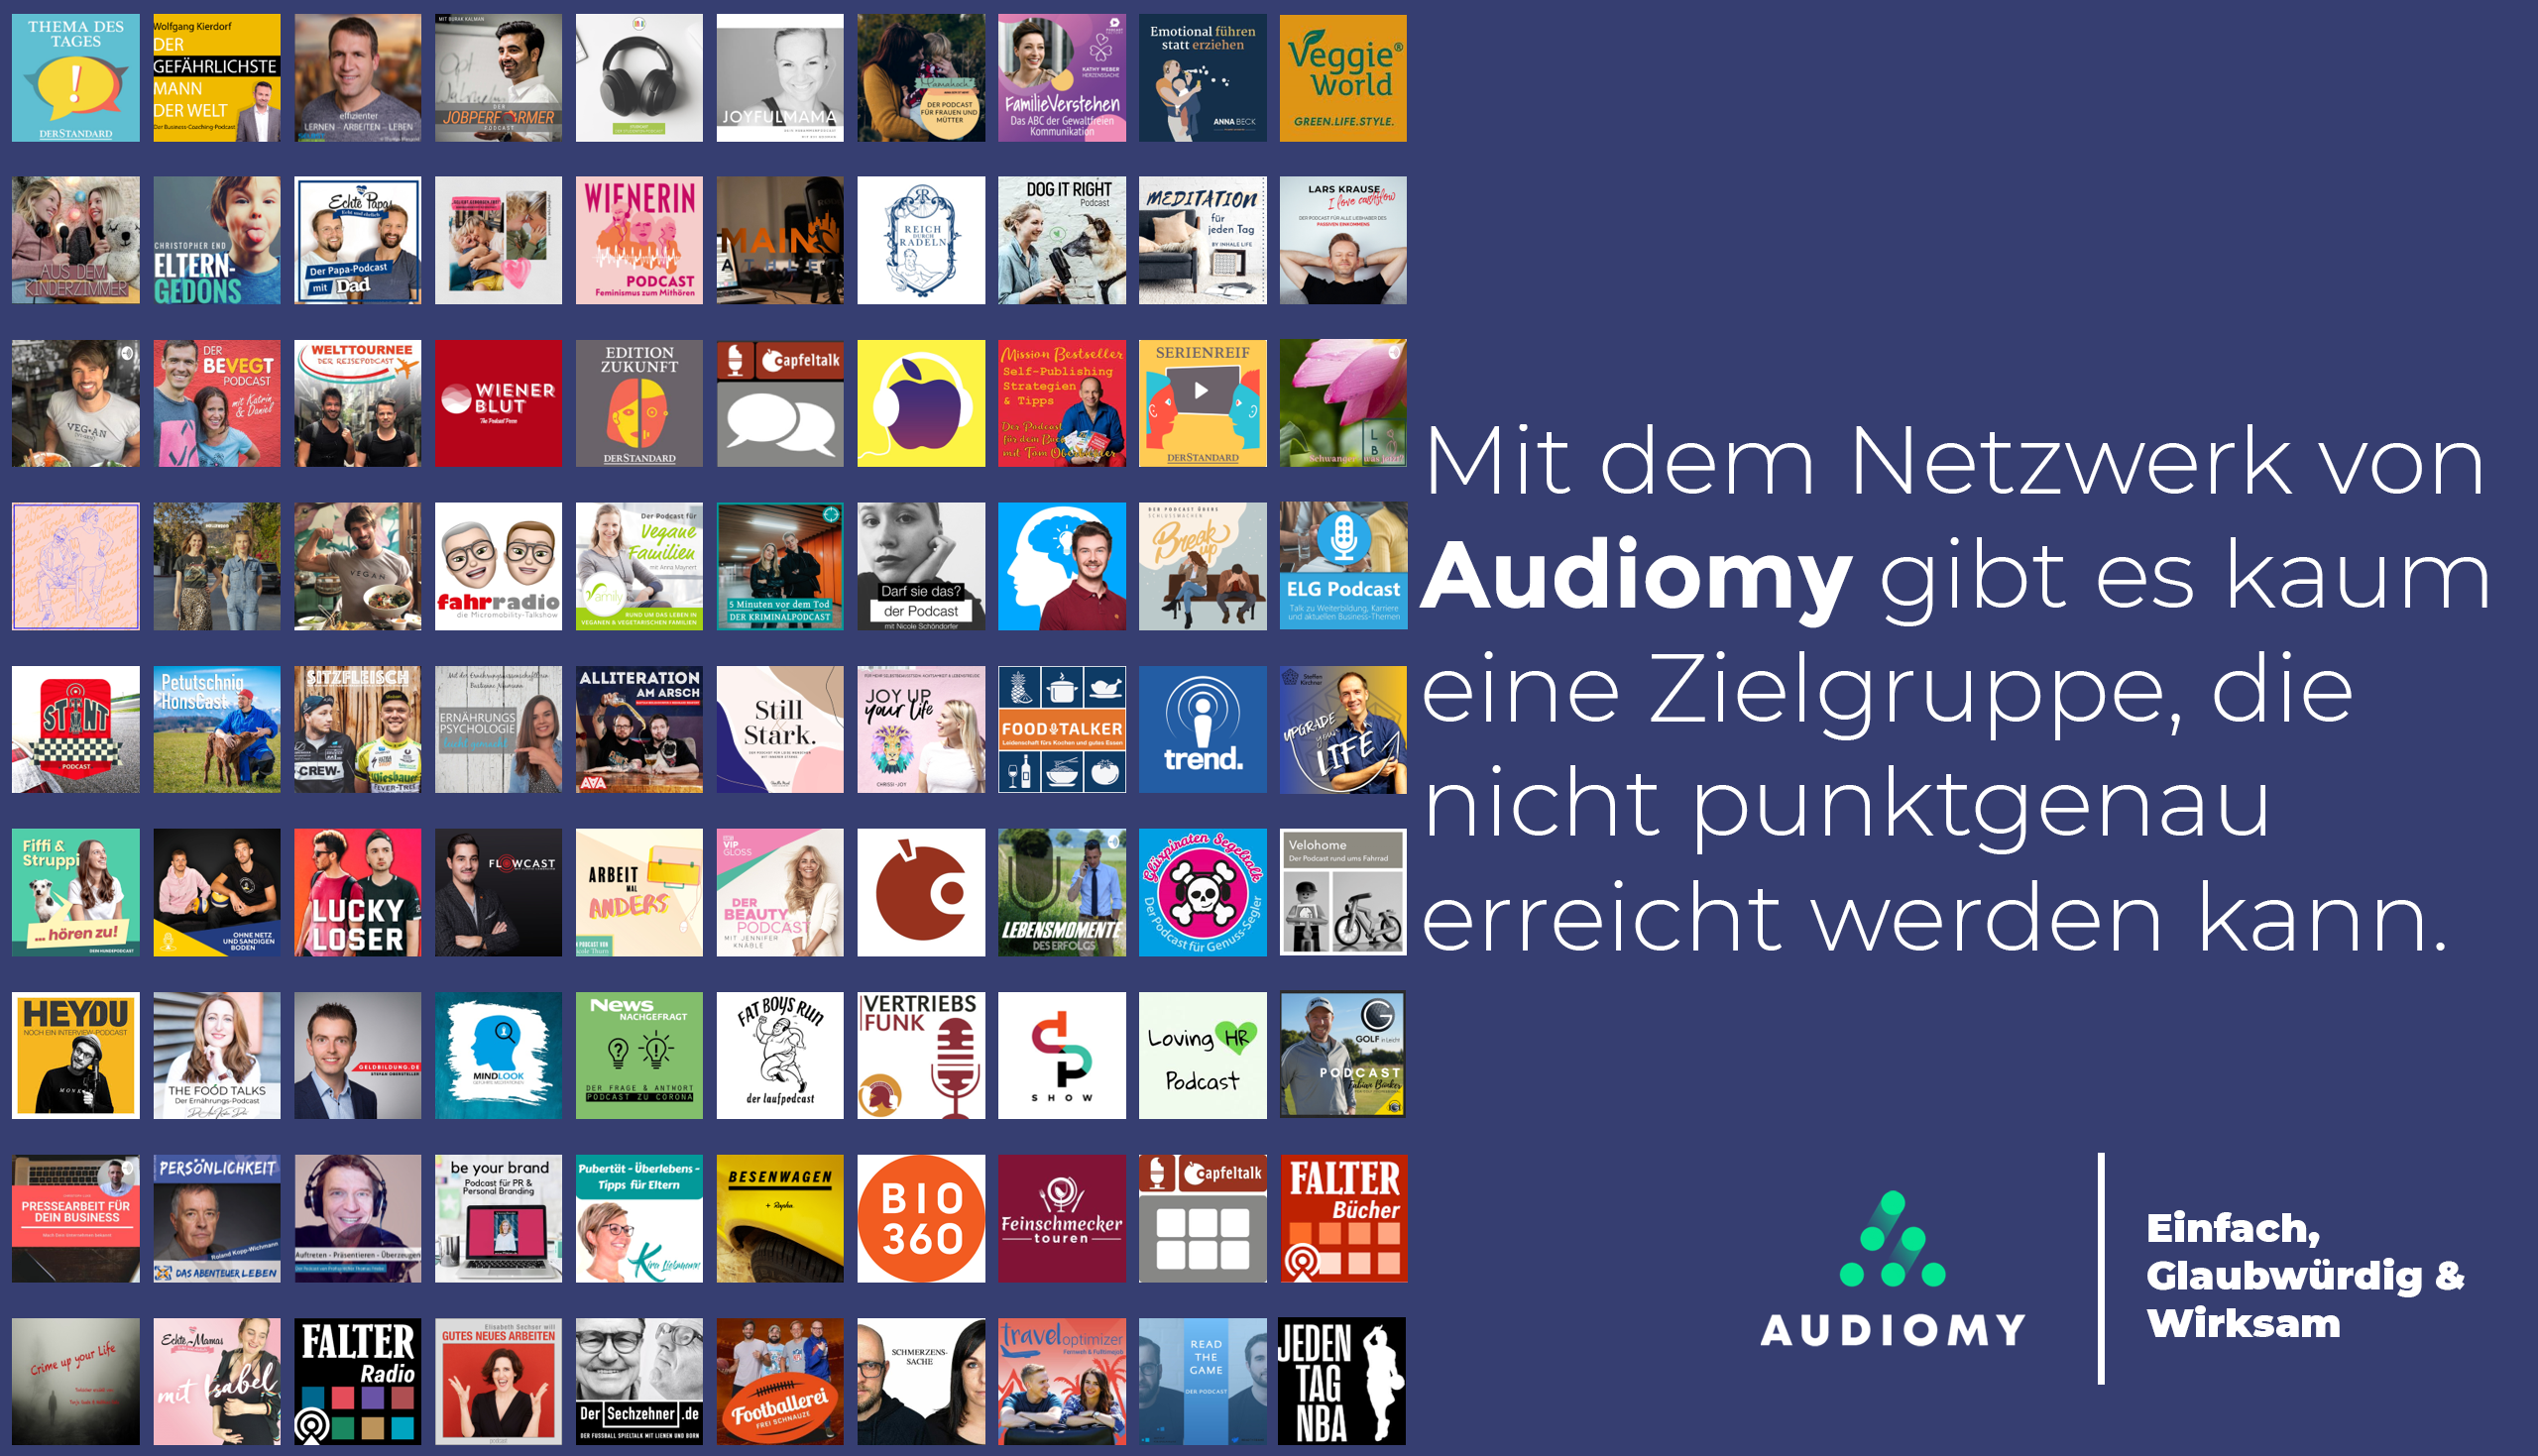 Audiomy, Podcasts